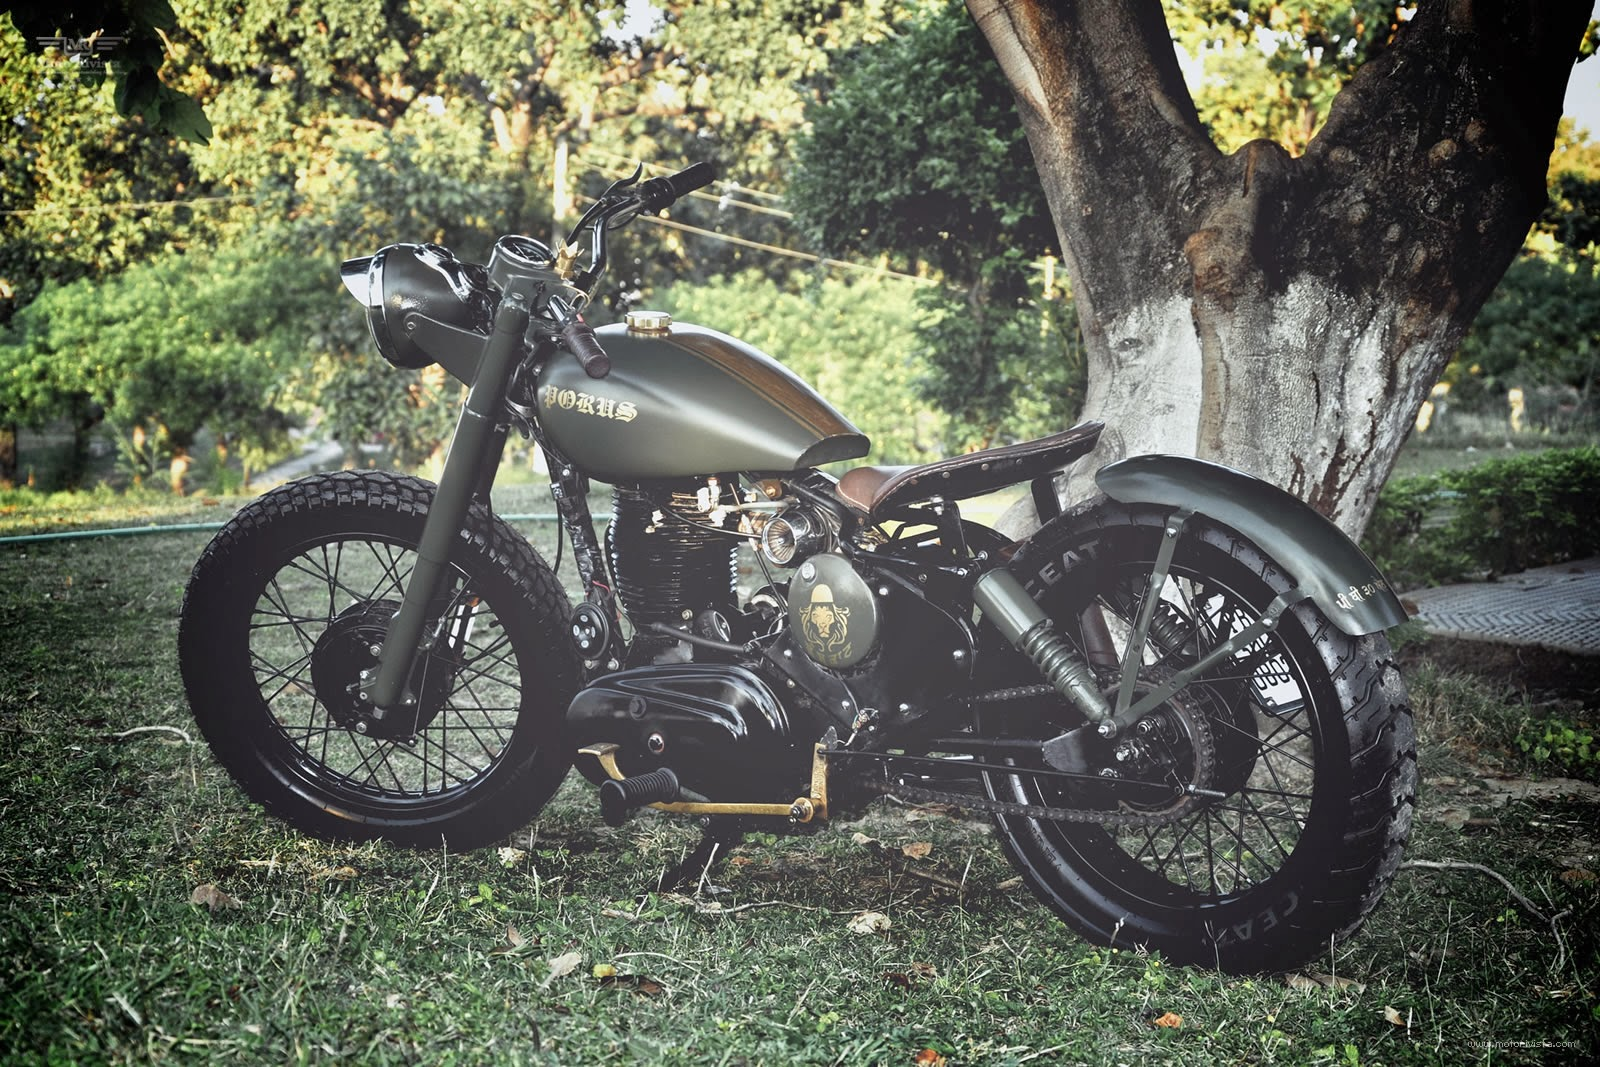 Royal Enfield Custom by Bambukaat MC | Royal Enfield Custom | Custom Royal Enfield | Royal Enfield Custom modifications | Royal Enfield Bullet | Royal Enfield Bullet Custom